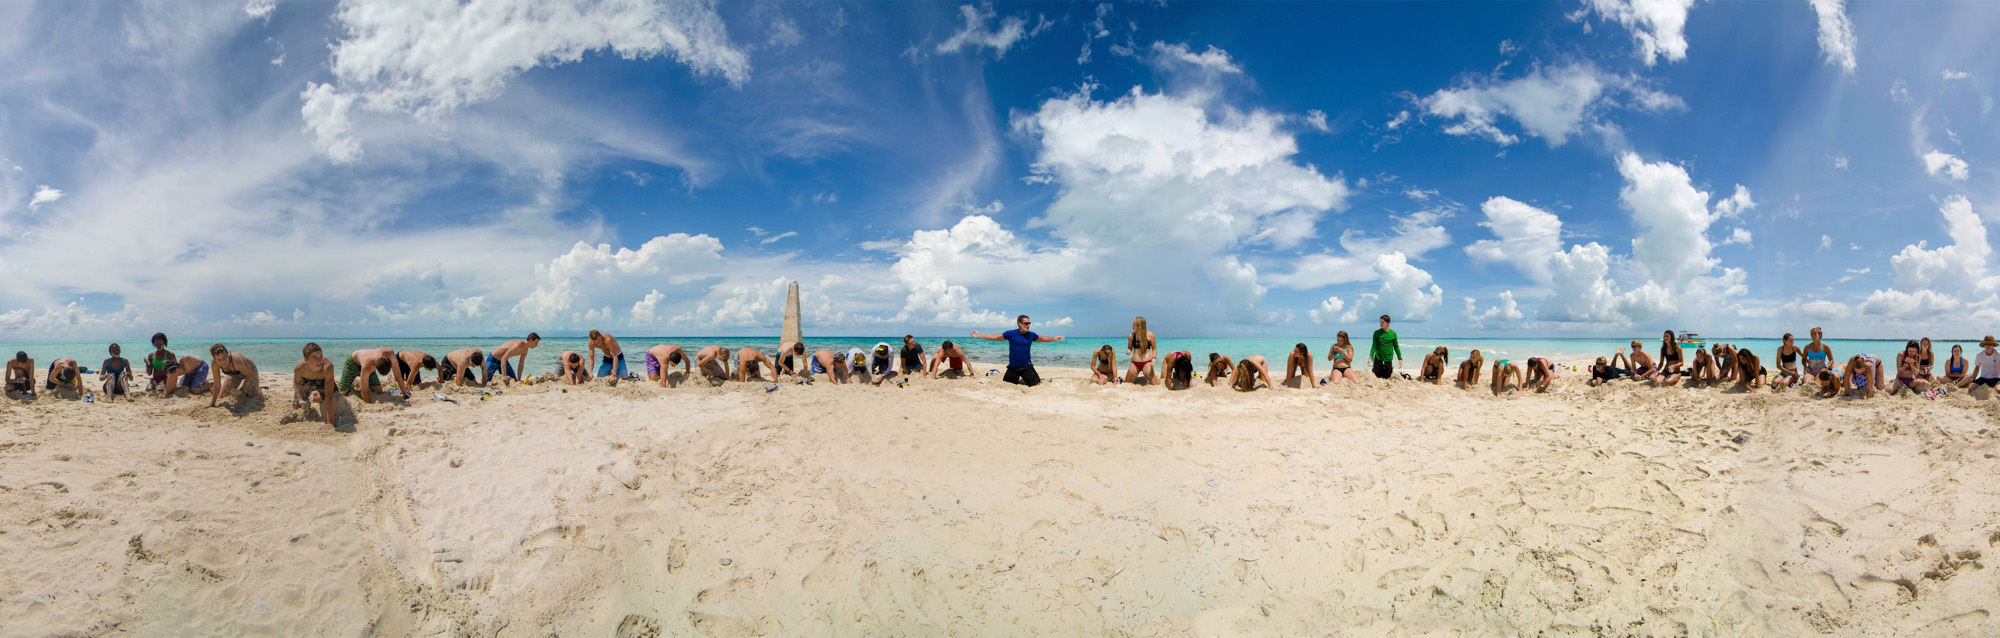 Island School Sandbar Class - Eleuthera, The Bahamas